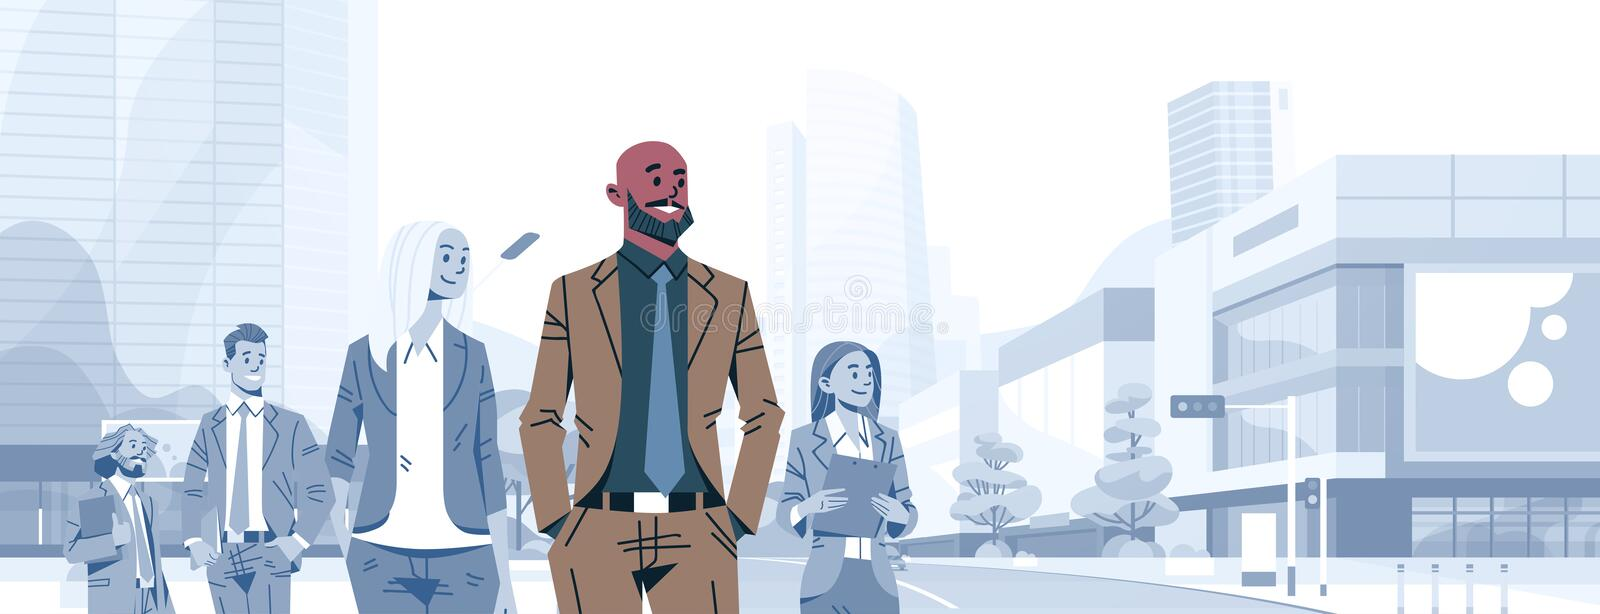 Bald head businessman team leader boss stand out business people group individual leadership concept male cartoon vector illustration